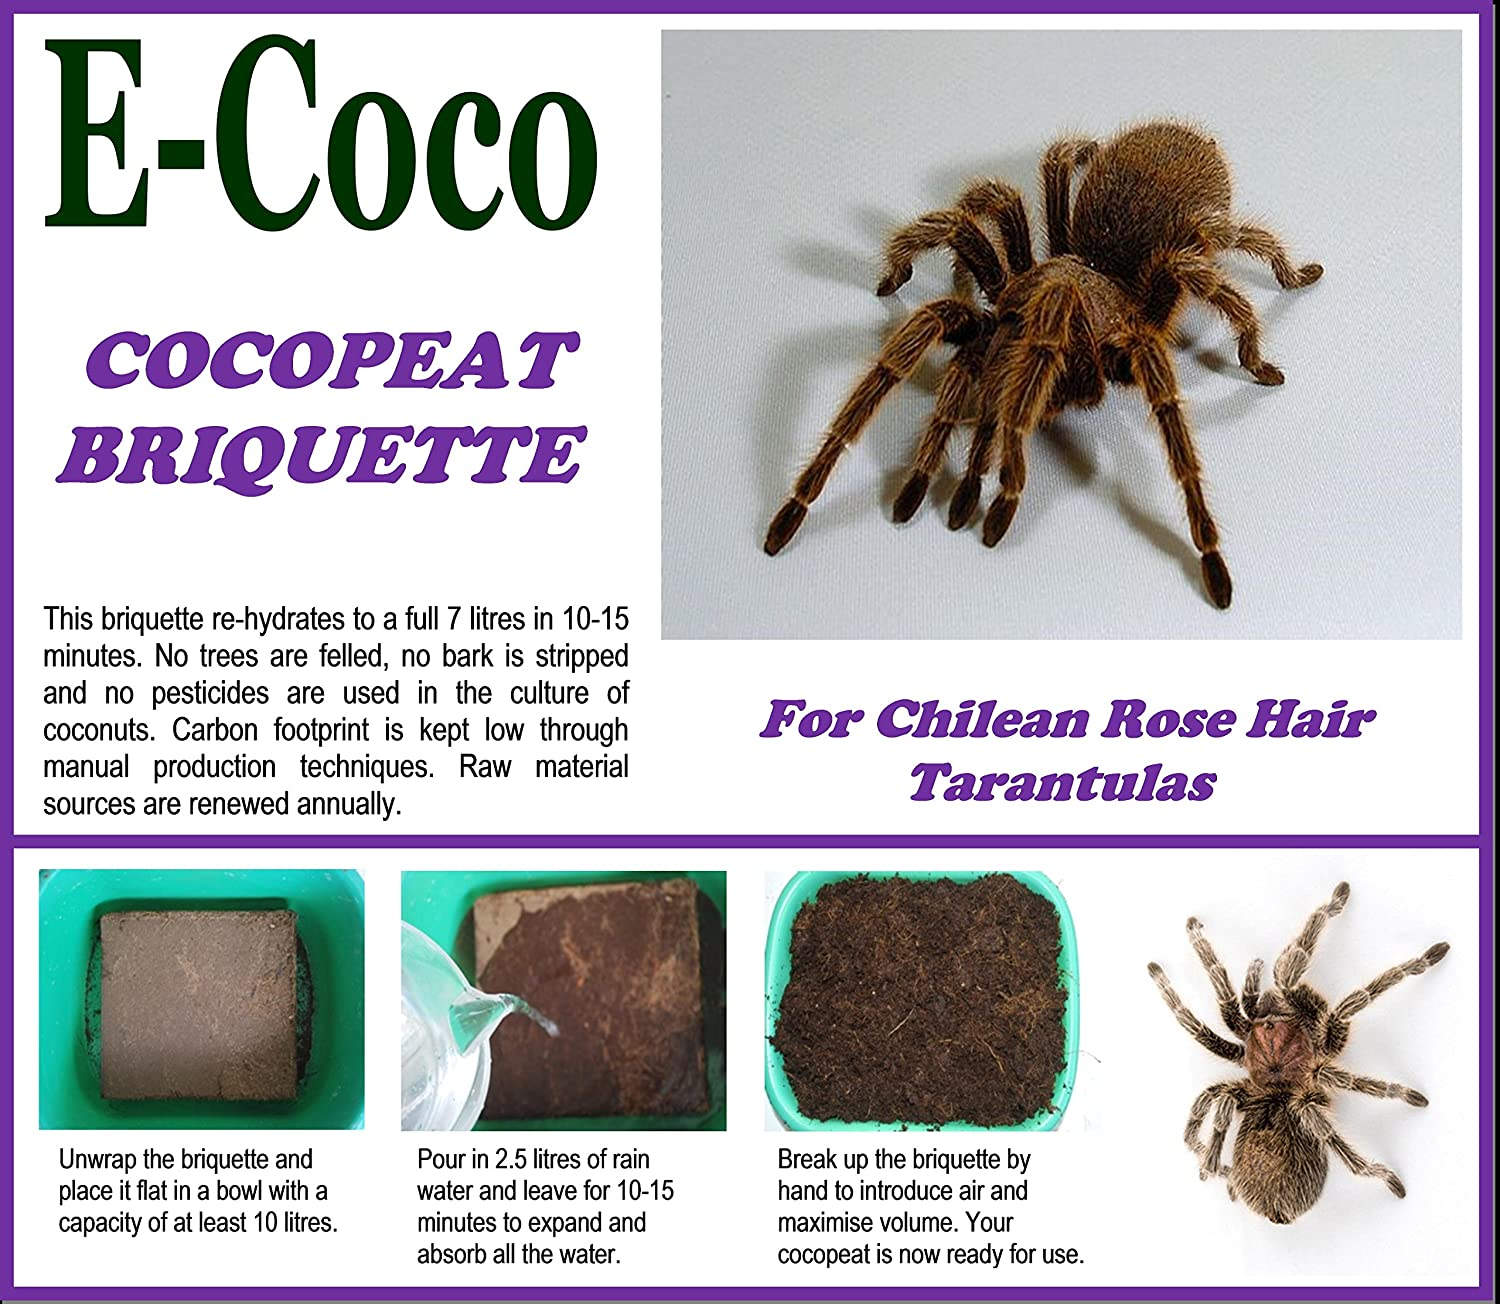 Chilean Rose Hair Tarantula Substrate, Bedding, Soil for Tarantulas - Compressed Briquette (7 litres) E-Coco Products UK